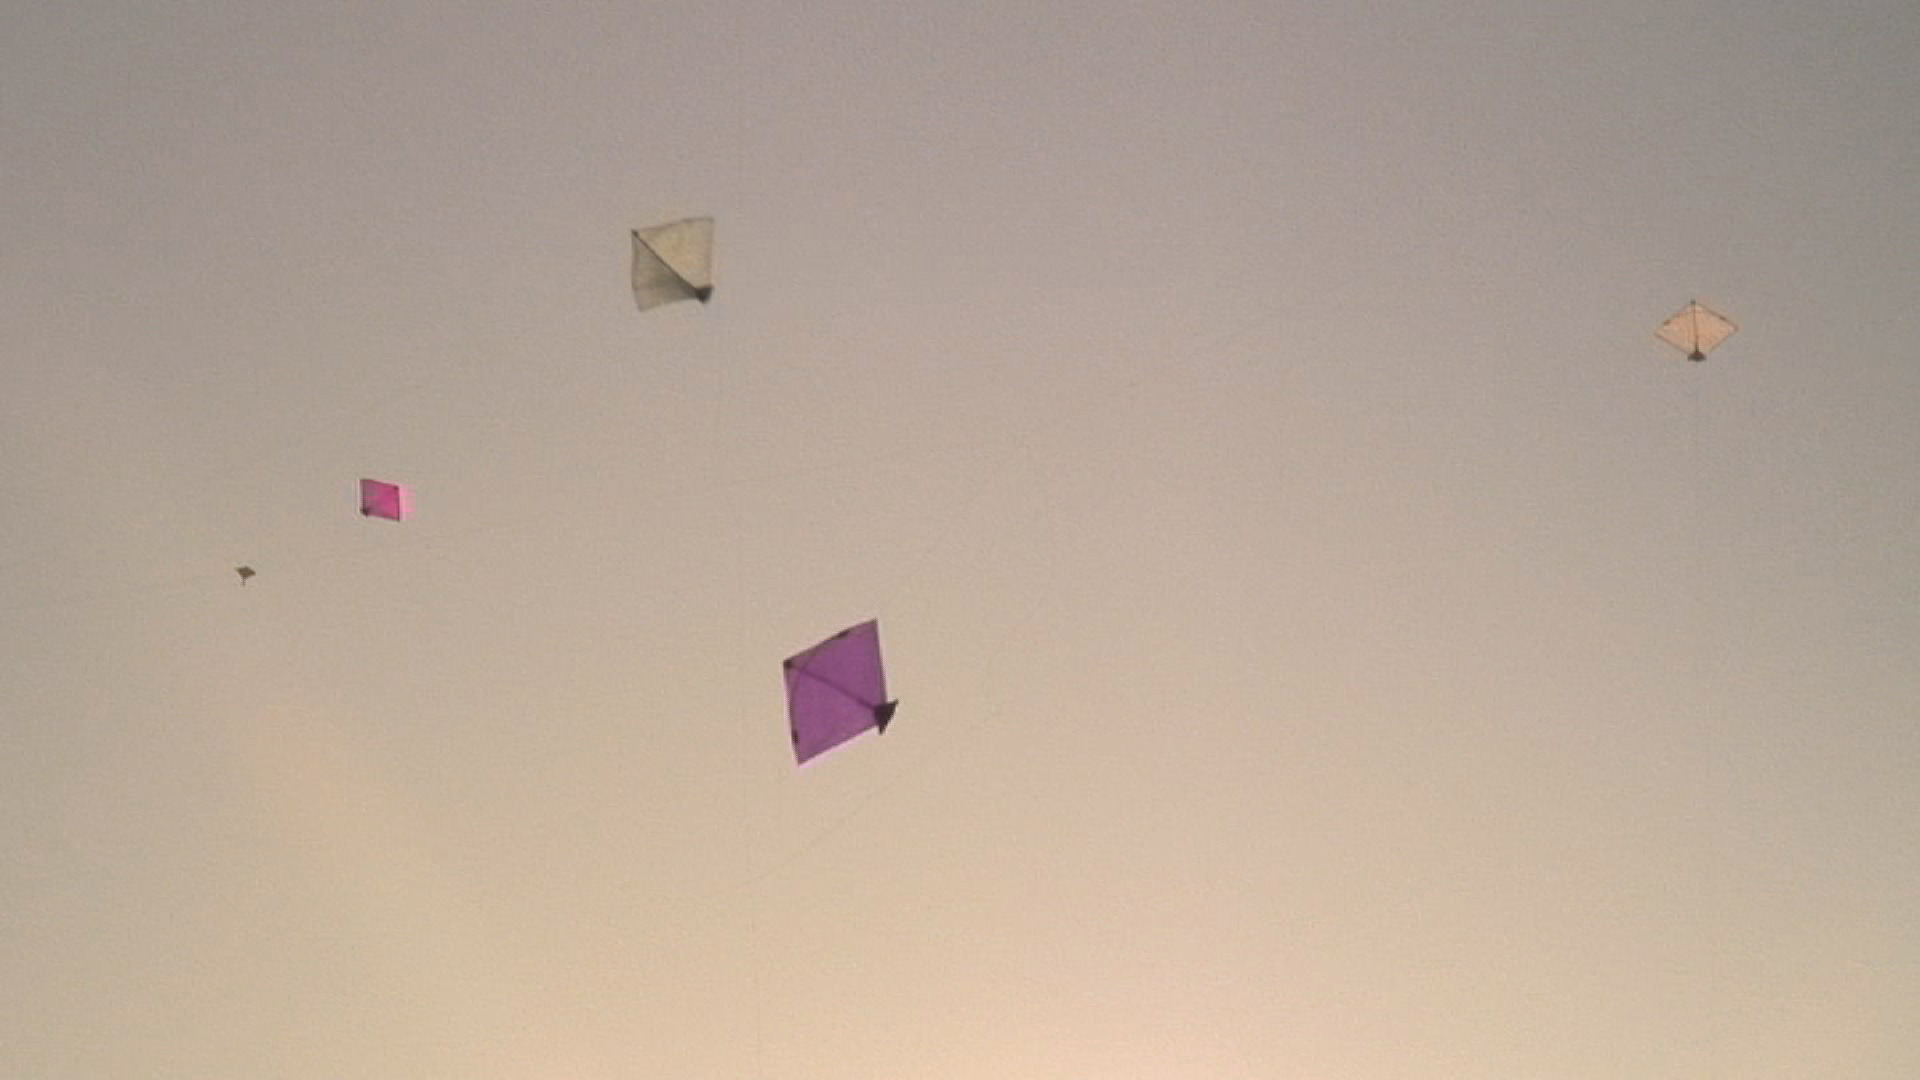 Kite festival, Gujarat, India with Sarah Schwartz